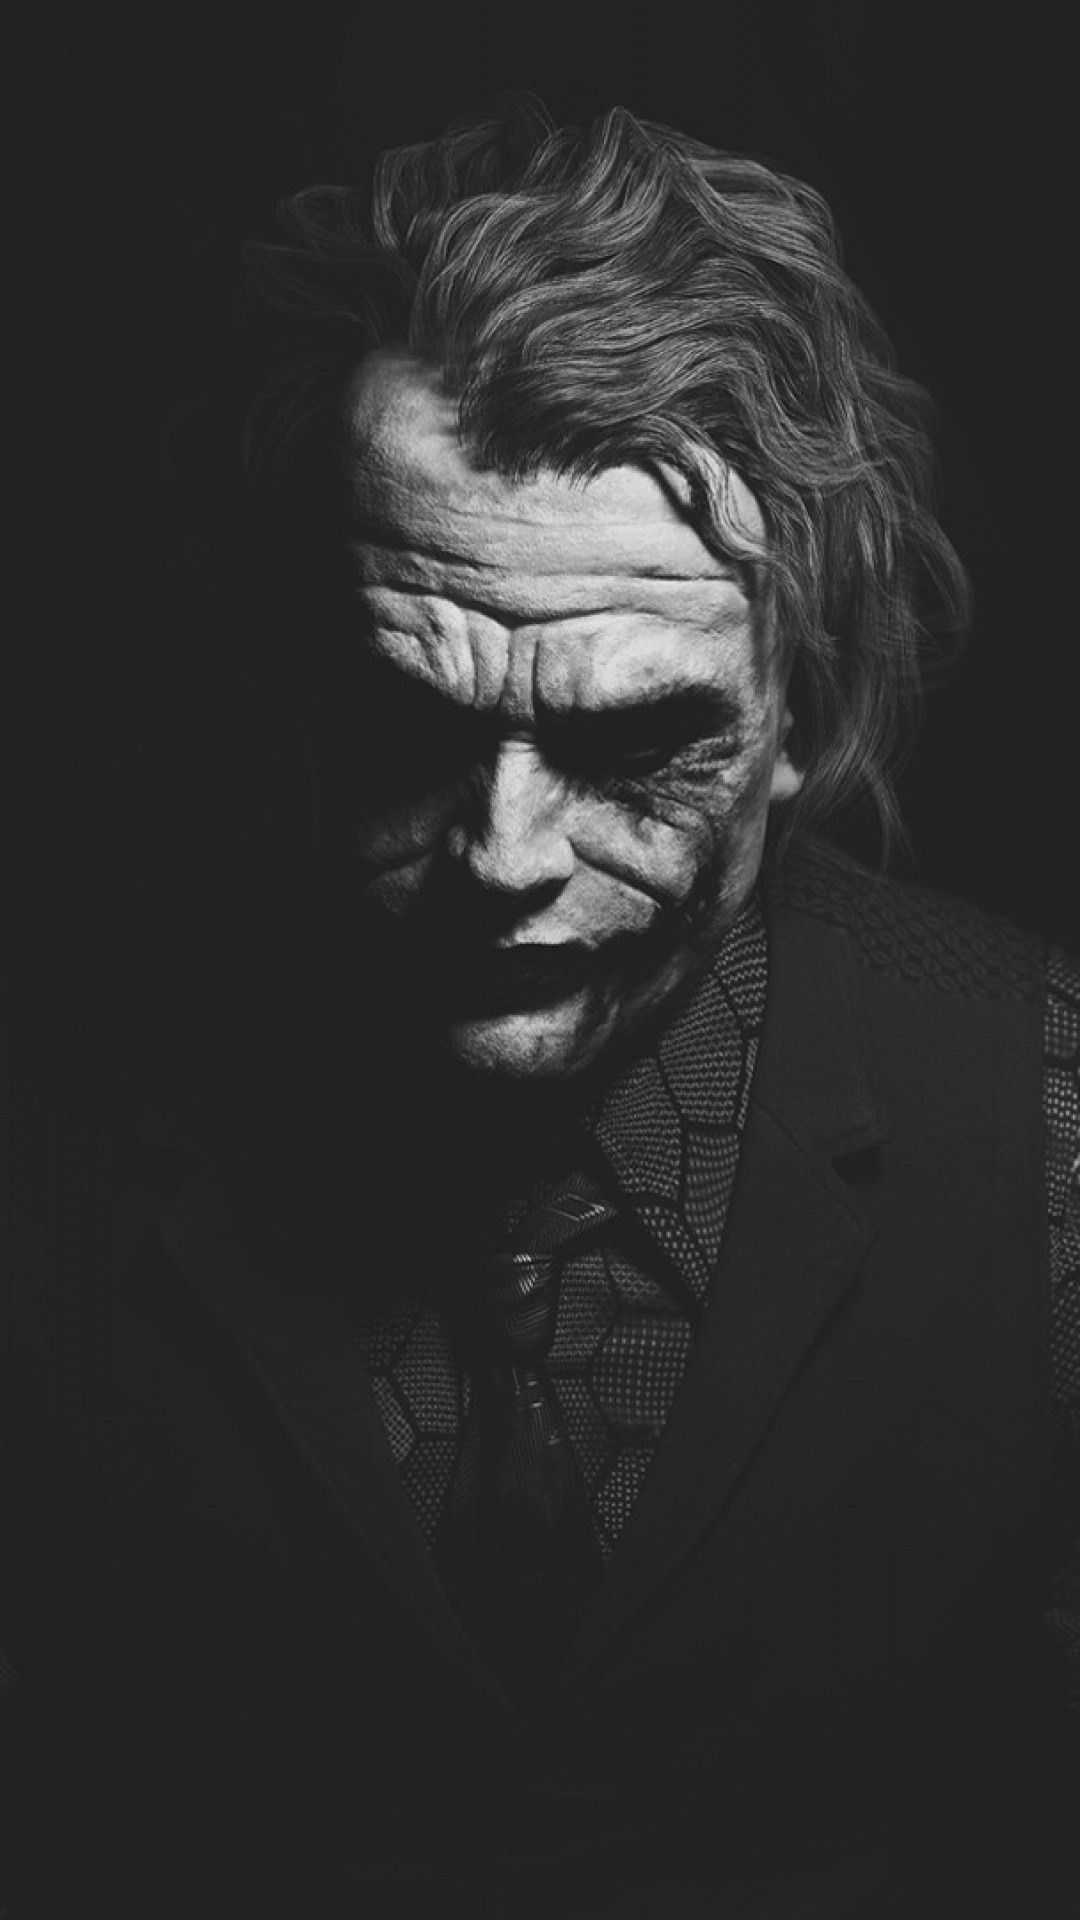 1080x1920 1080x1920 heath ledger joker monochrome batman joker hd wallpapers for iphone